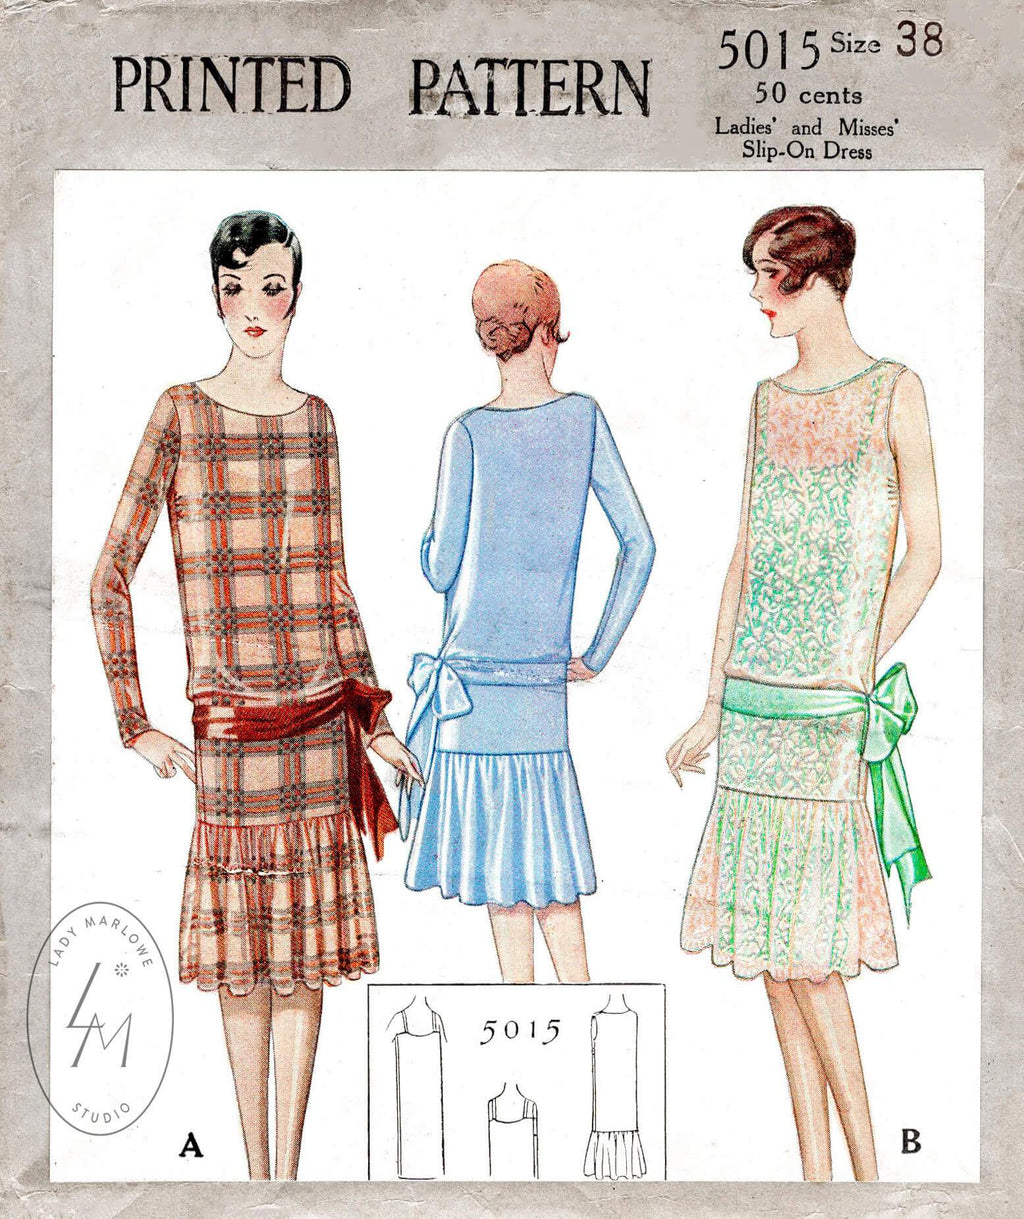 McCall 5015 1920s 1927 flapper dress drop waist sash bow ribbon tie vintage sewing pattern repro